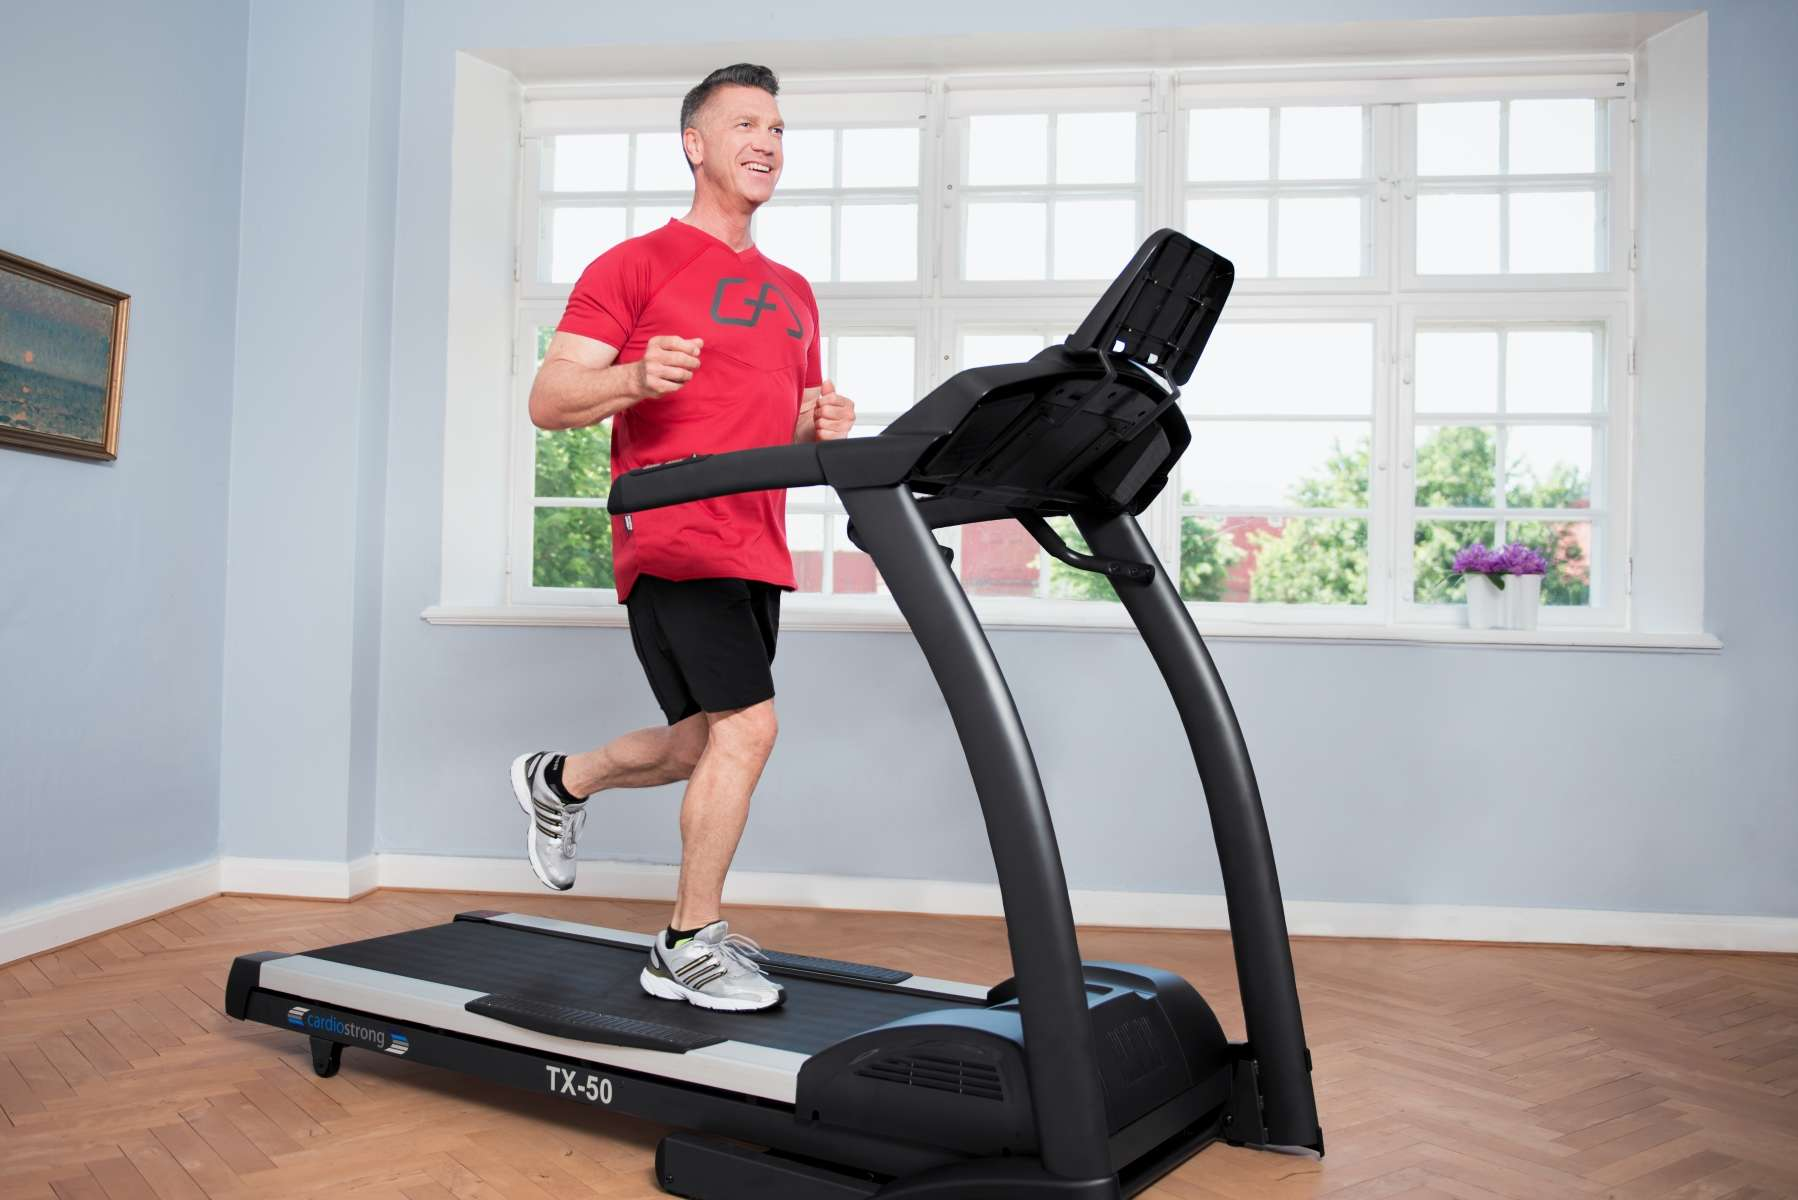 Treadmill Walking 101 - How to Get Started pictures